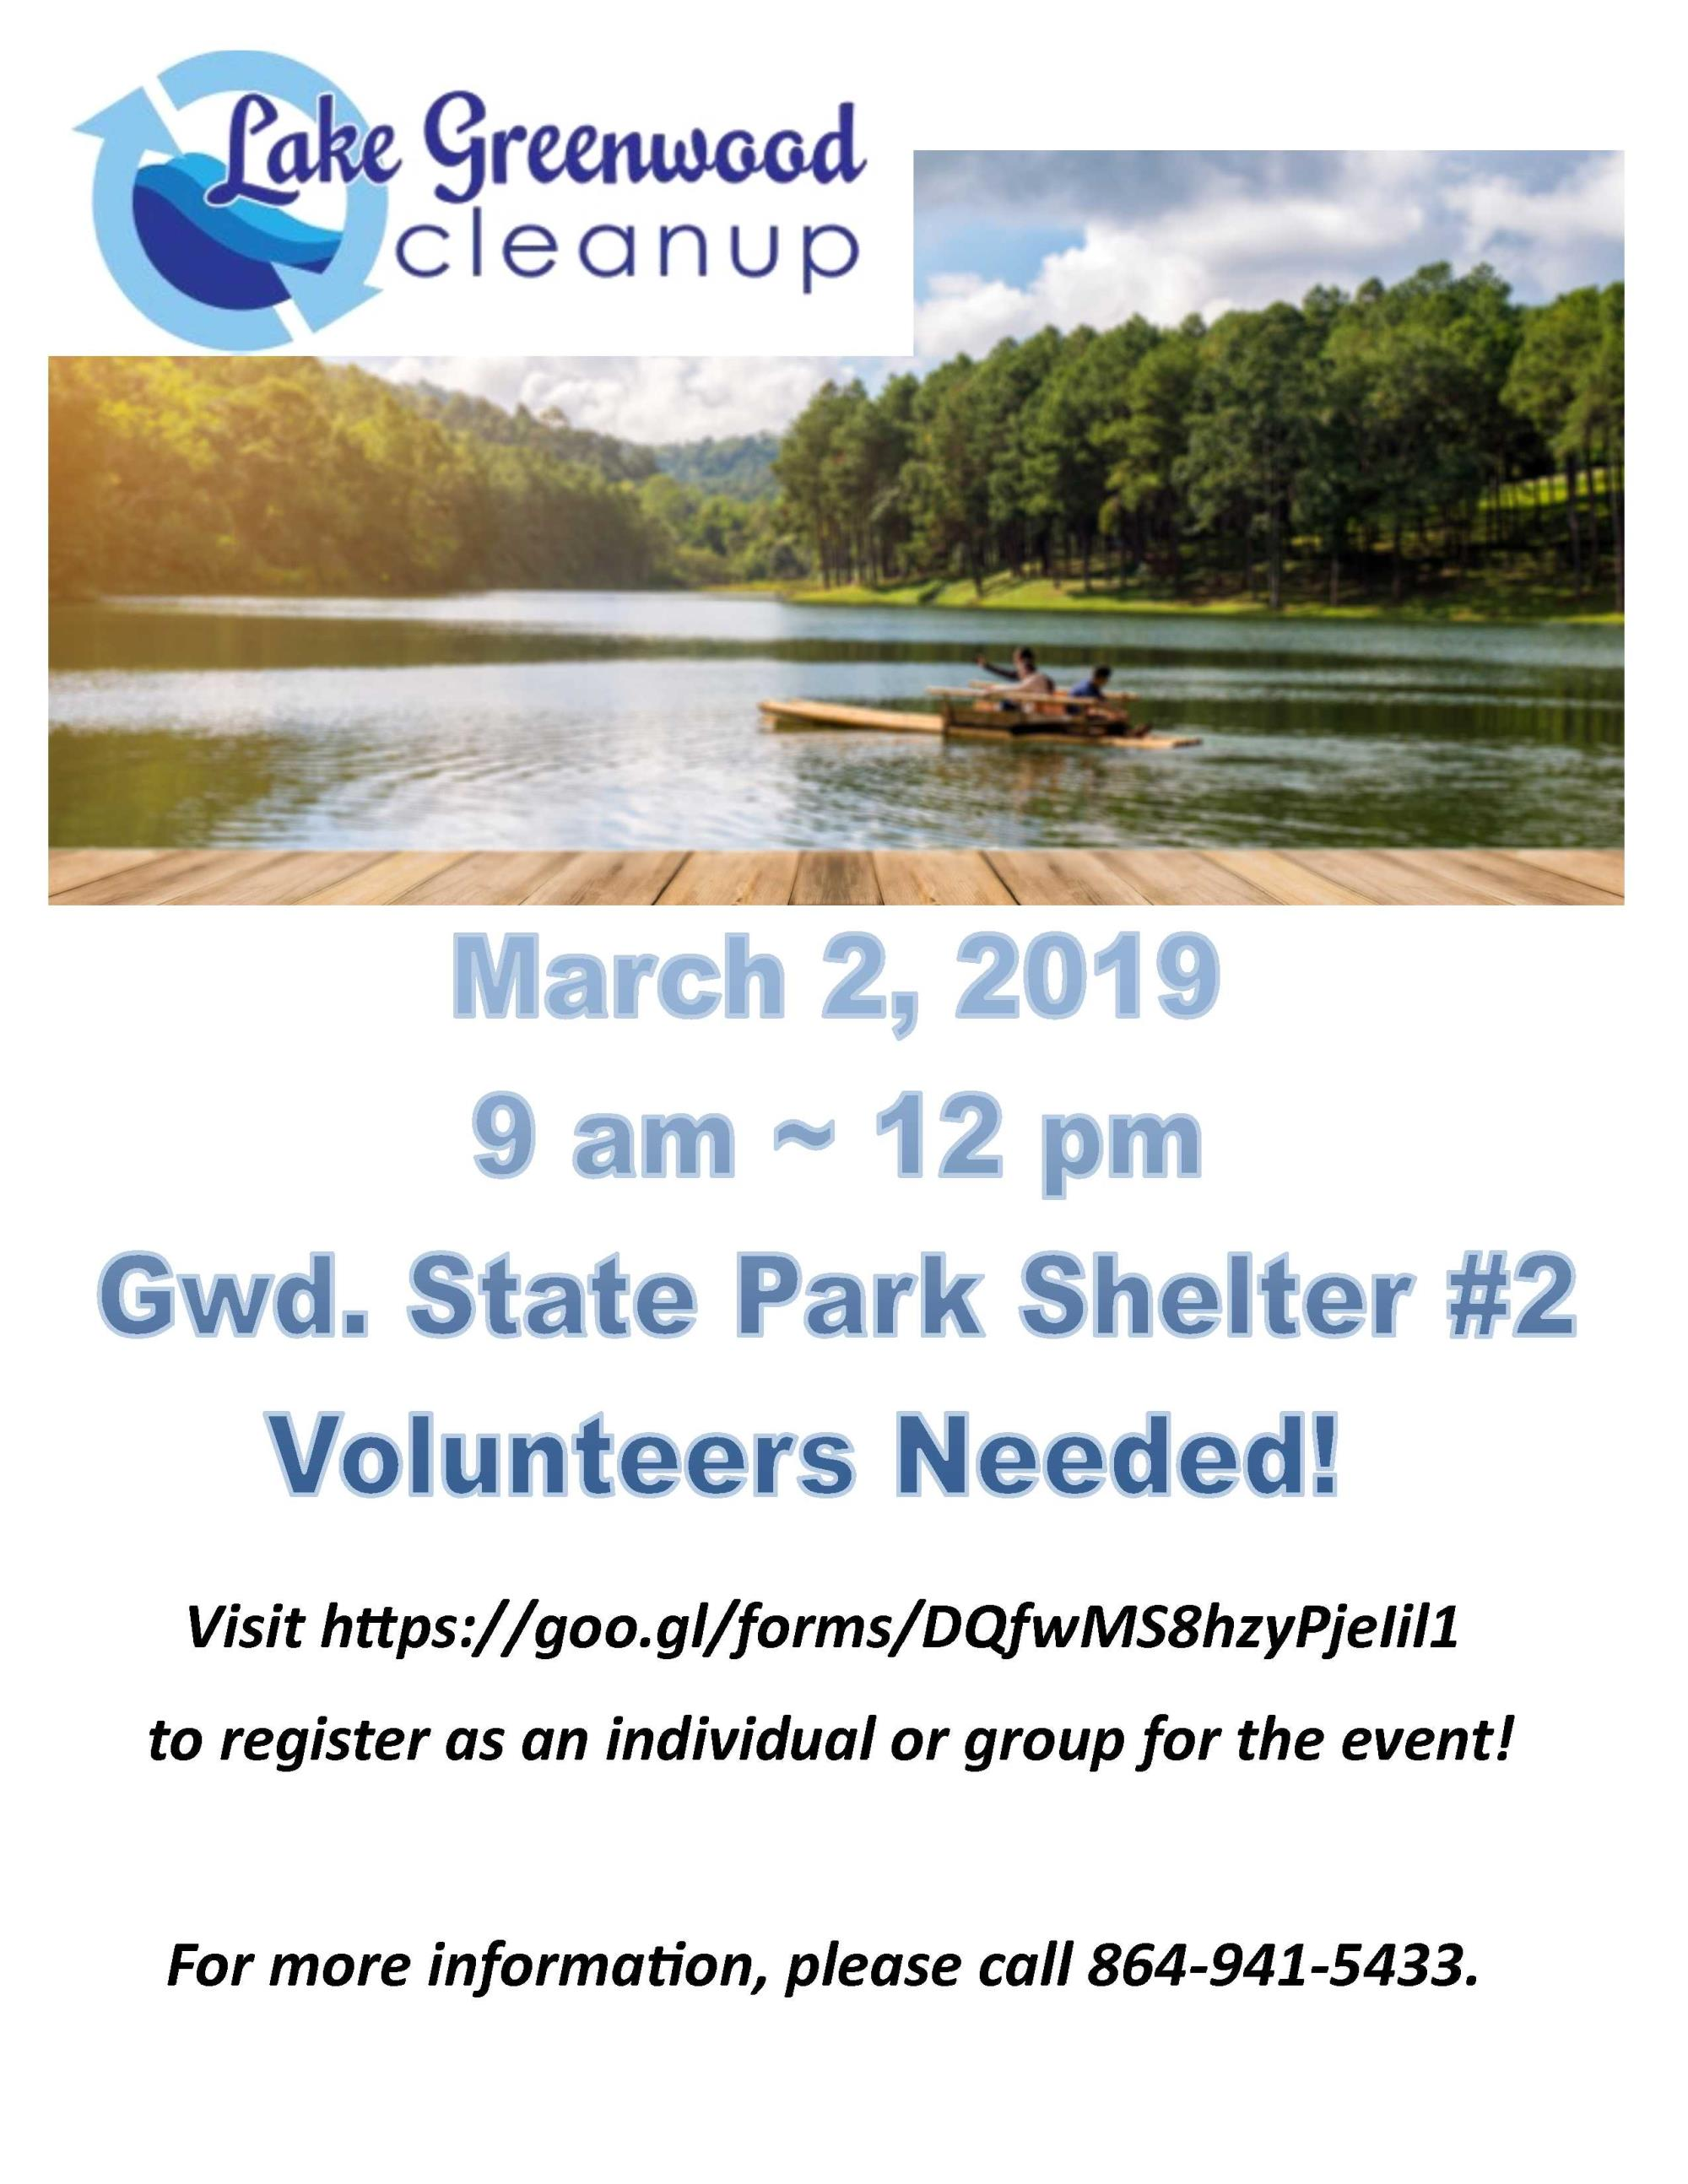 Lake Greenwood Cleanup Day Saturday, March 2, 2019